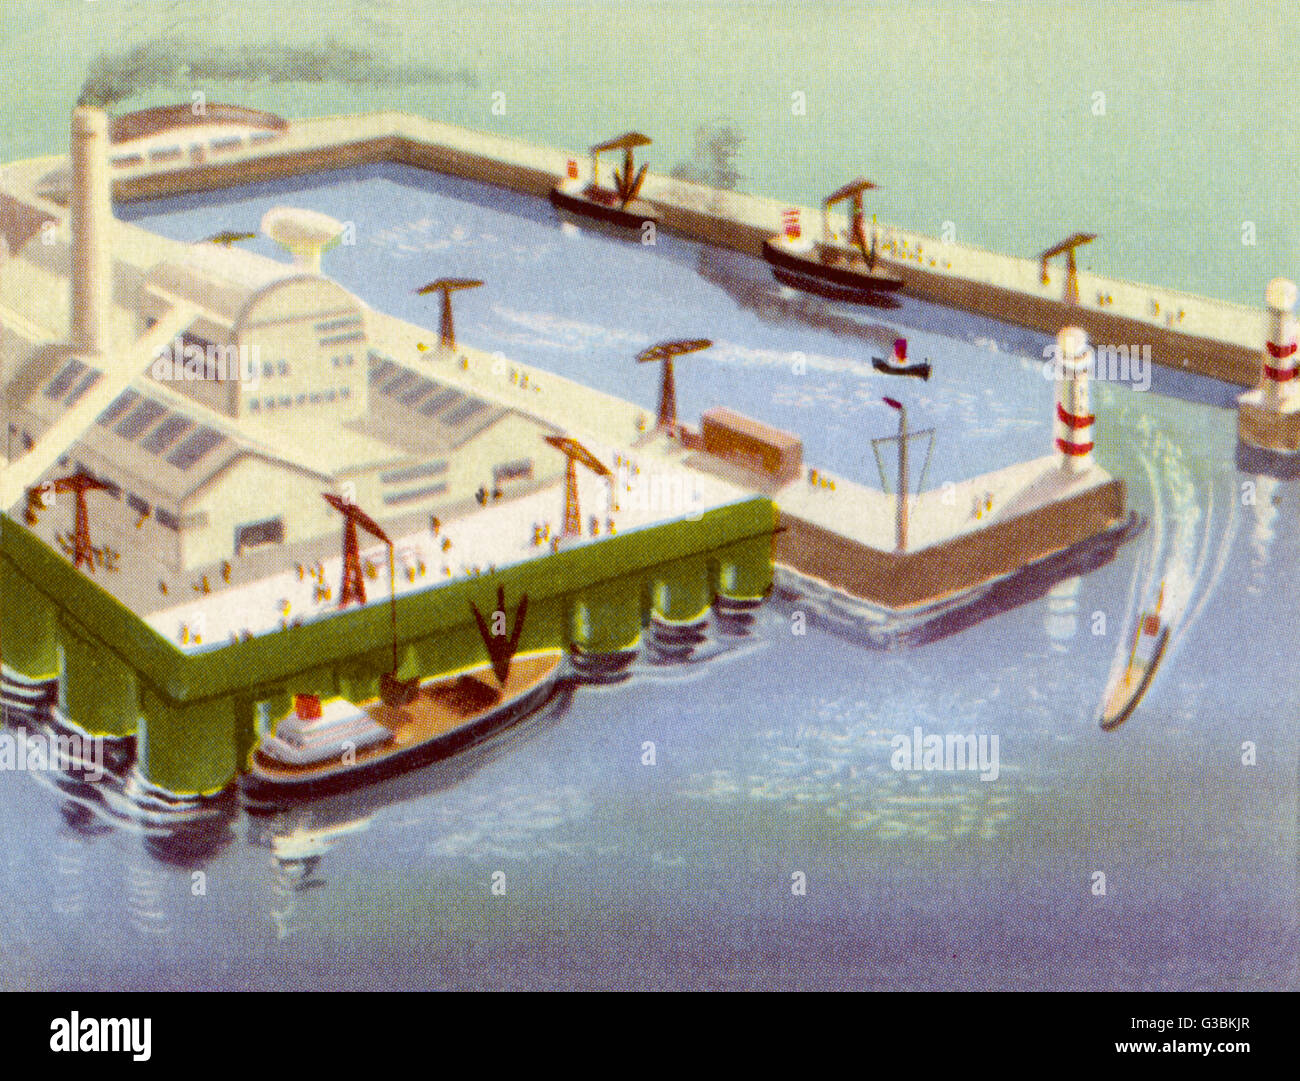 THIS FLOATING HARBOUR WITH ITS  WORKSHOPS CAN BE MOVED FROM  ONE LOCATION TO ANOTHER       Date: circa 1950 - Stock Image